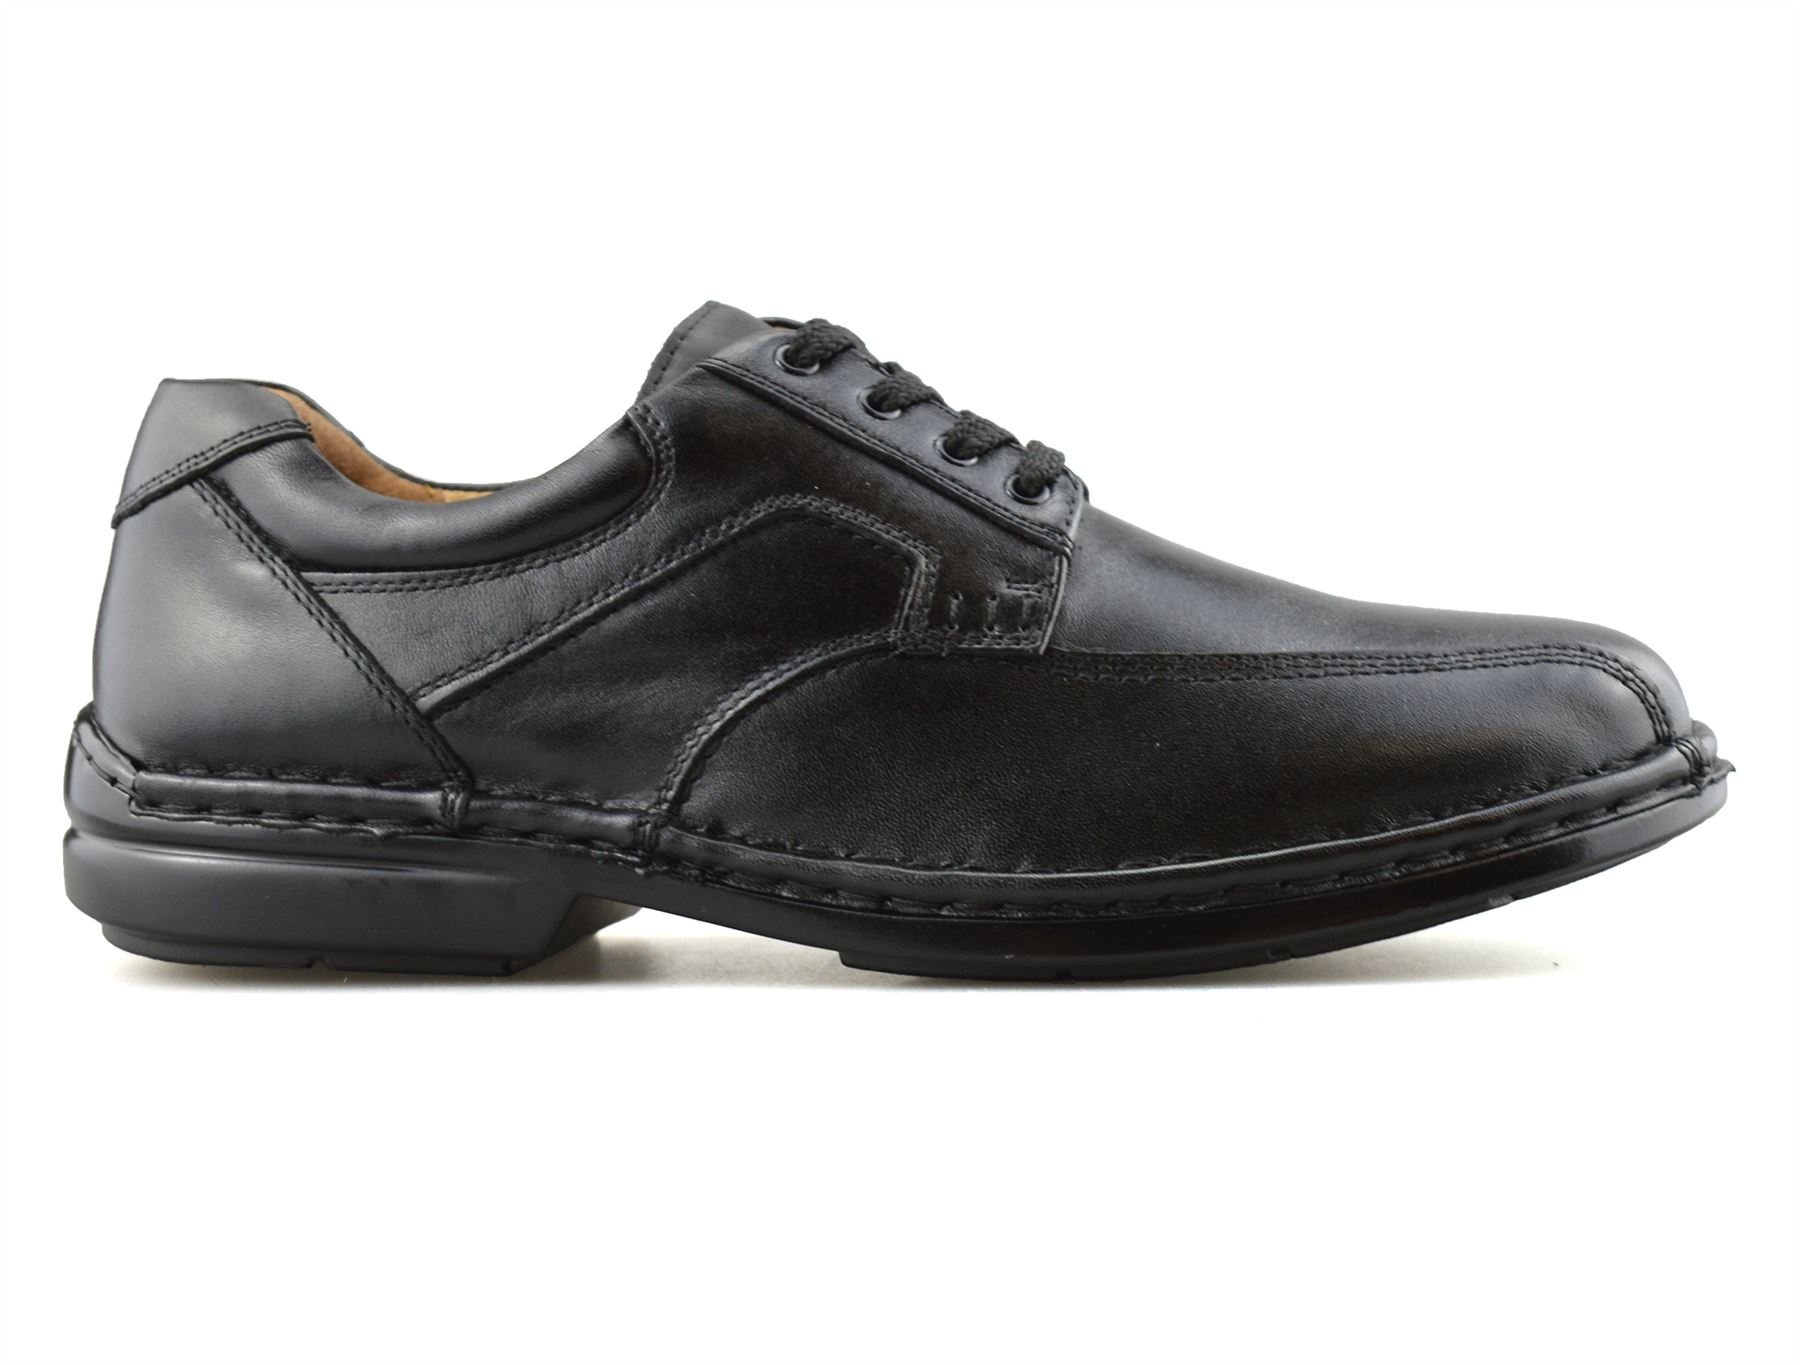 Mens-Hush-Puppies-Leather-Wide-Fit-Smart-Casual-Lace-Up-Work-Office-Shoes-Size thumbnail 10